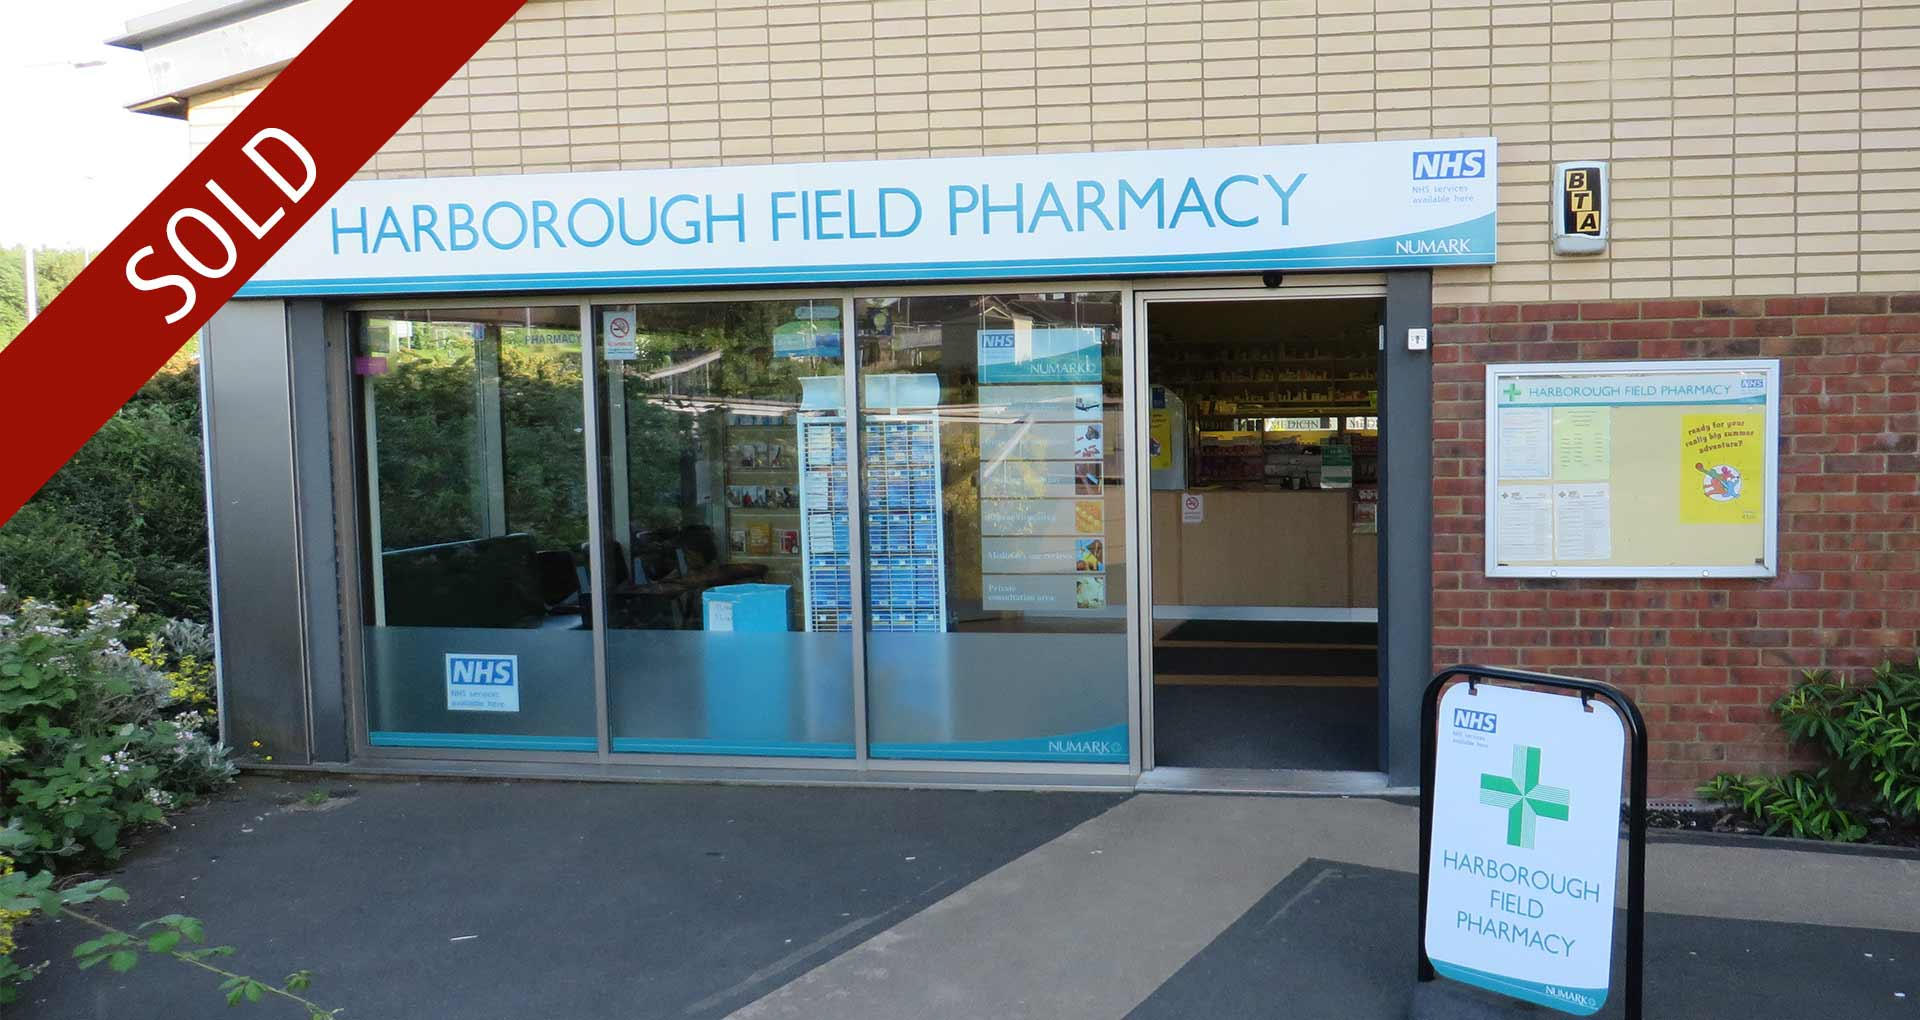 Harborough Field Pharmacy, Northants